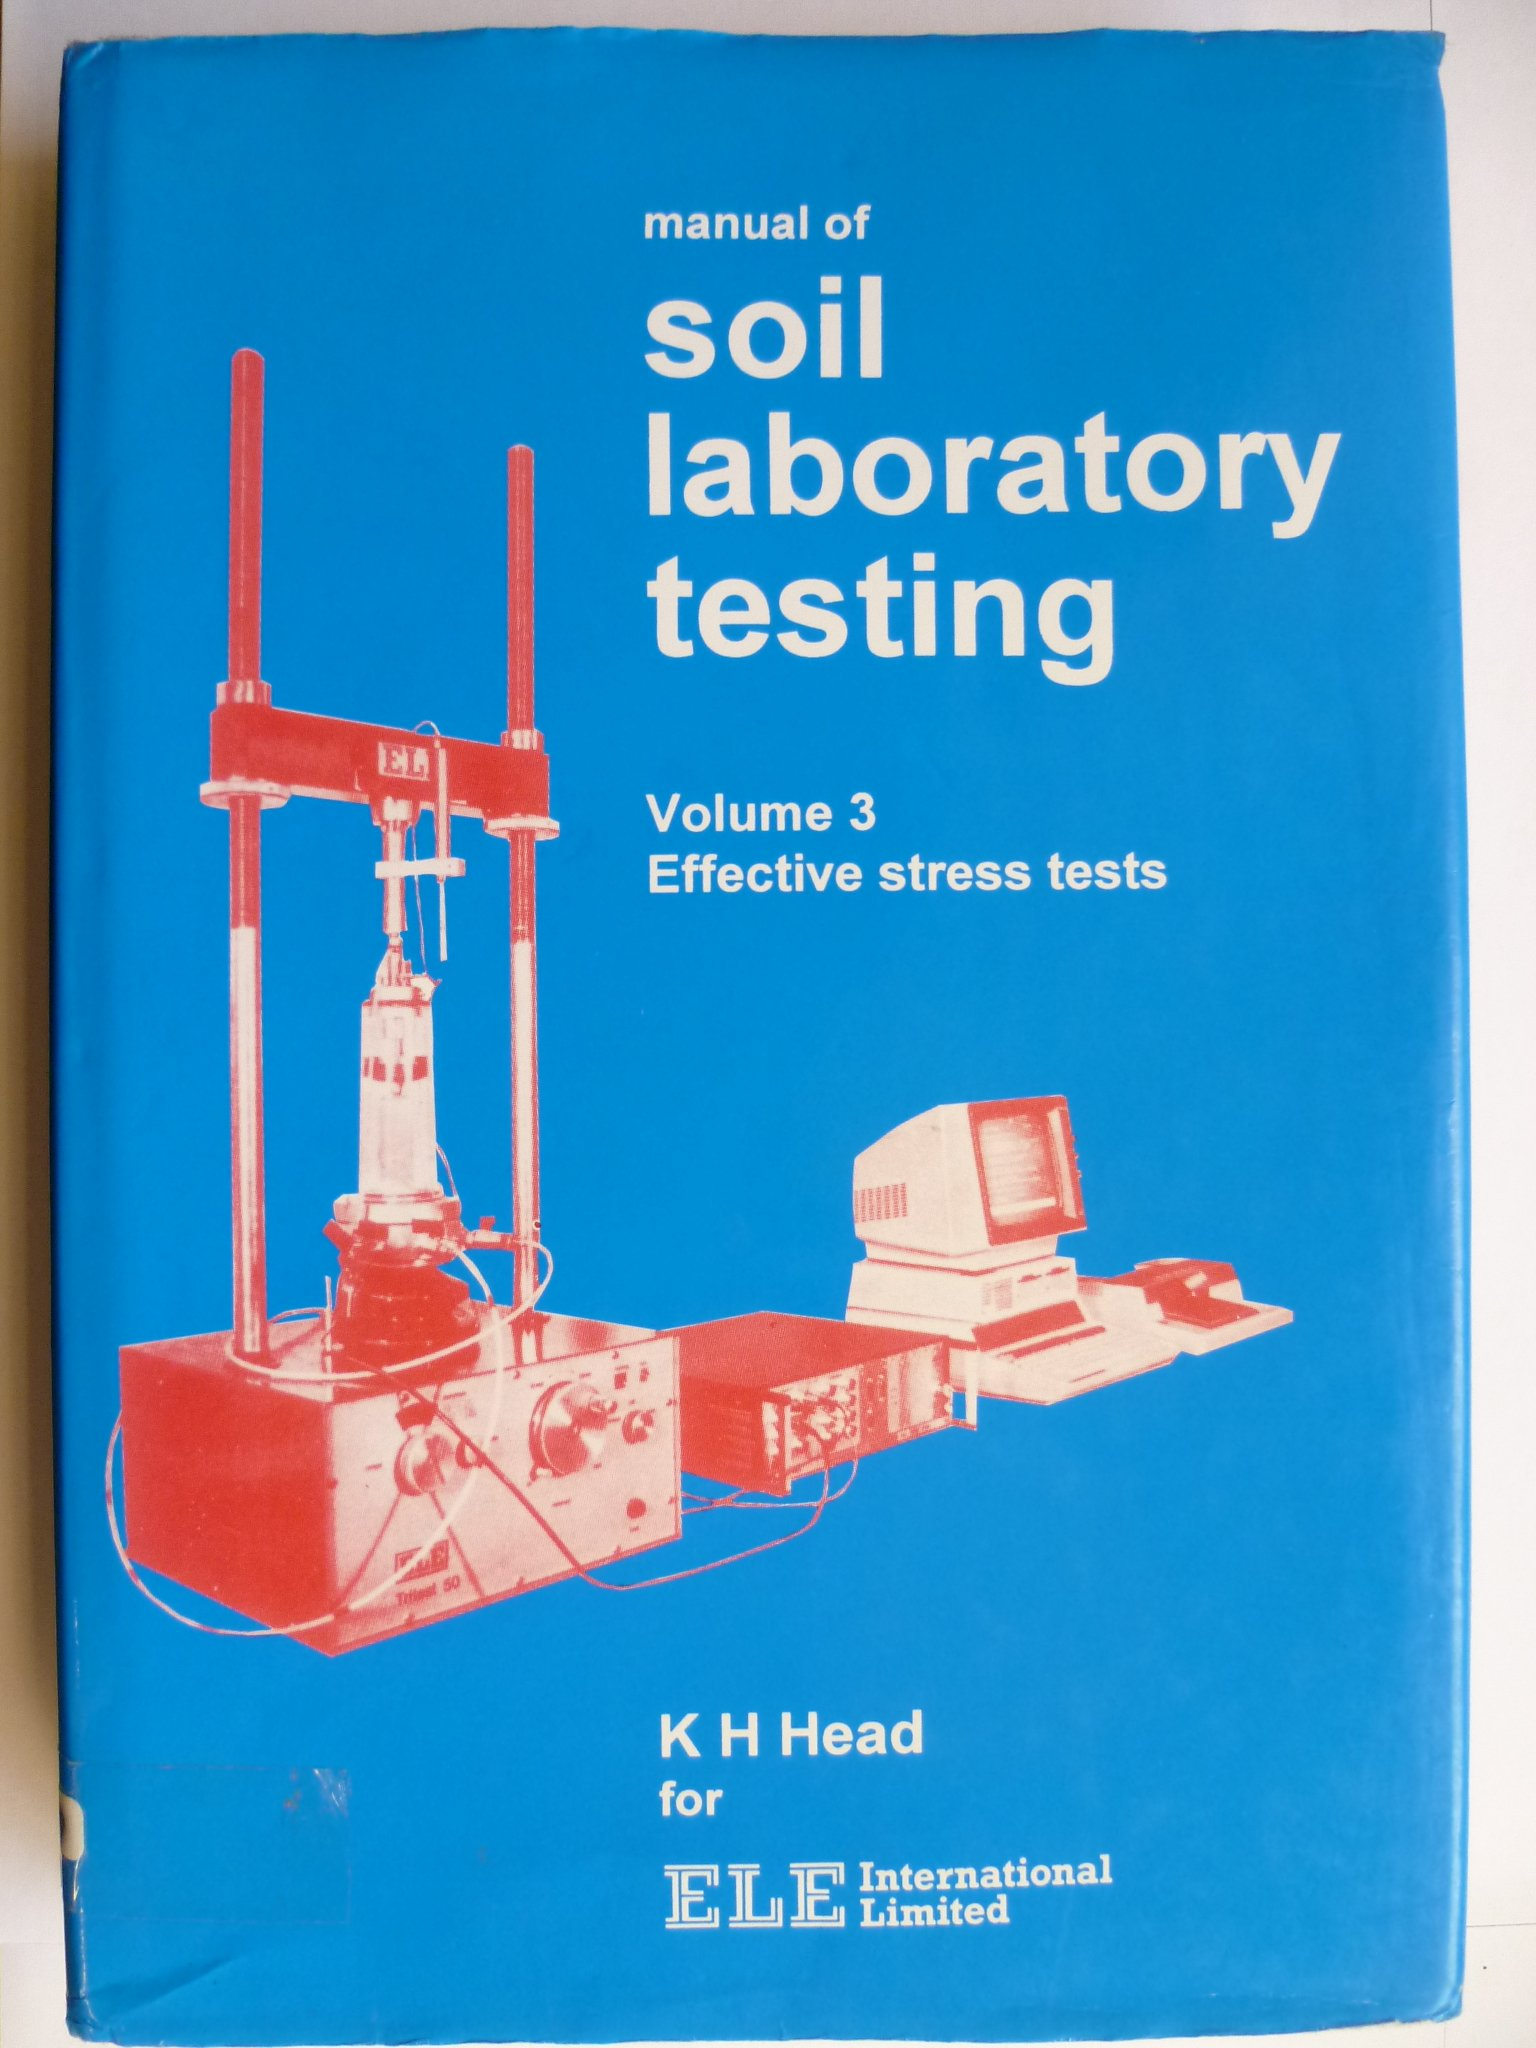 Buy Manual of Soil Laboratory Testing V 3 - Stress Test Book Online at Low  Prices in India | Manual of Soil Laboratory Testing V 3 - Stress Test  Reviews ...